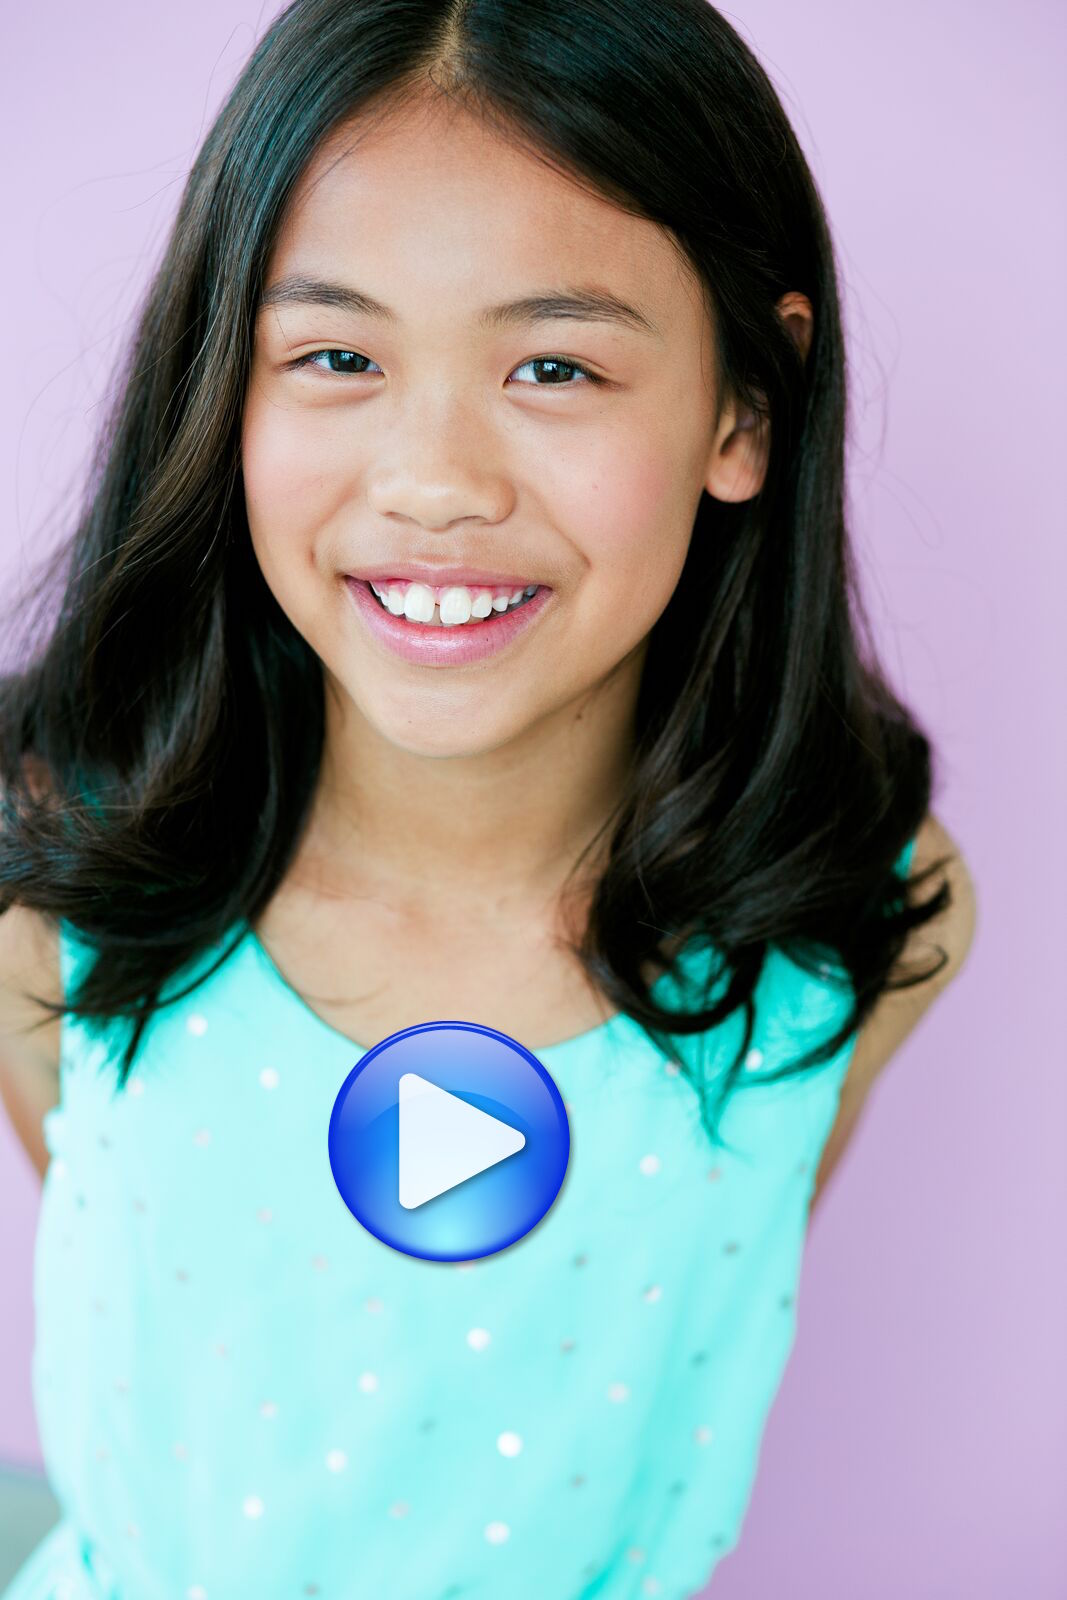 321 shine reviews - Acting Builds Confidence And Friendships Jessica Liu 3 2 1 Talent Showcase Acting Studios